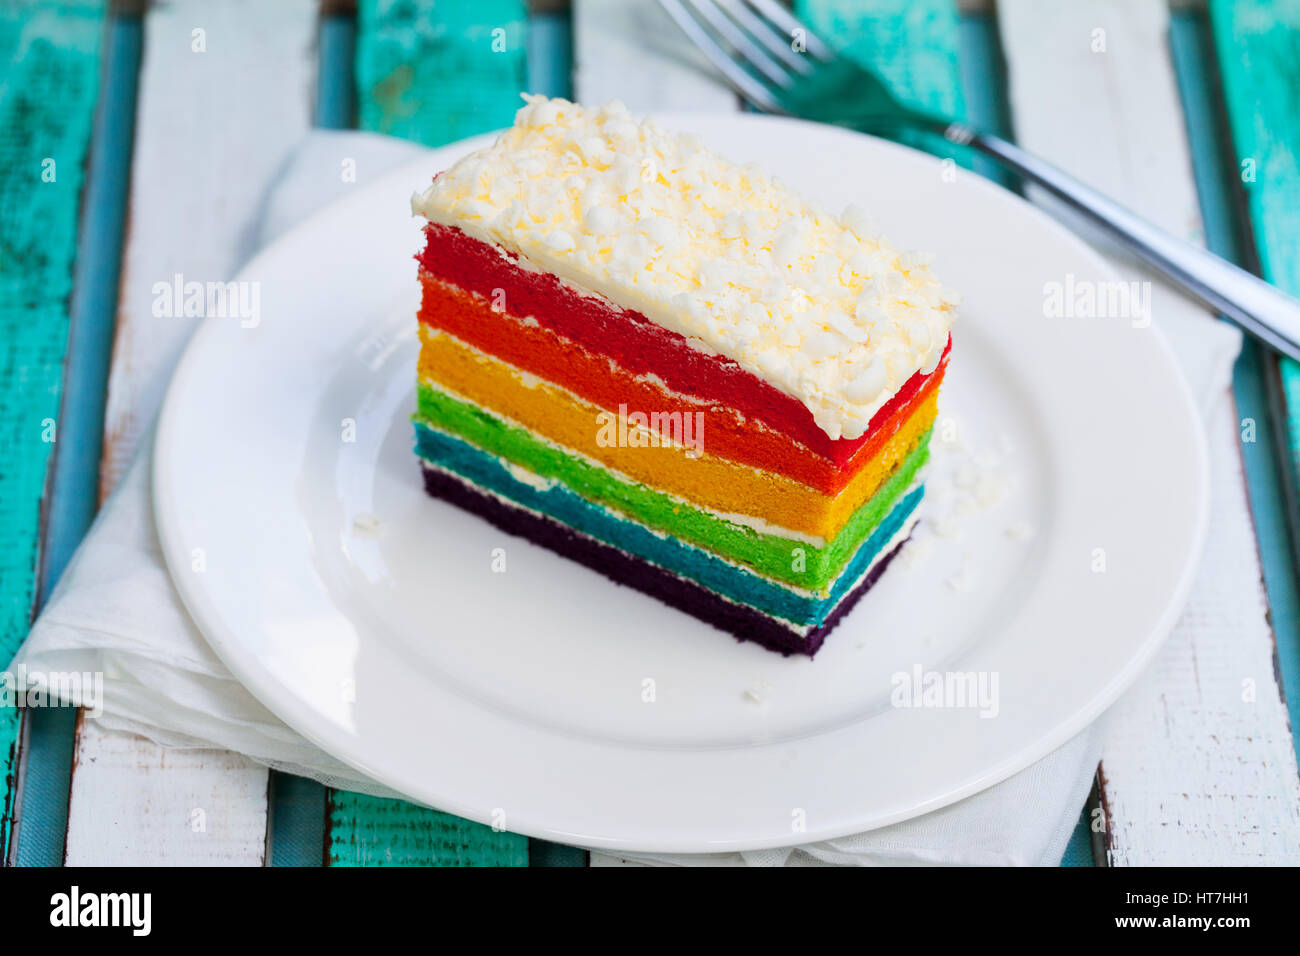 Rainbow Cake On A White Plate Wooden Background Stock Photo